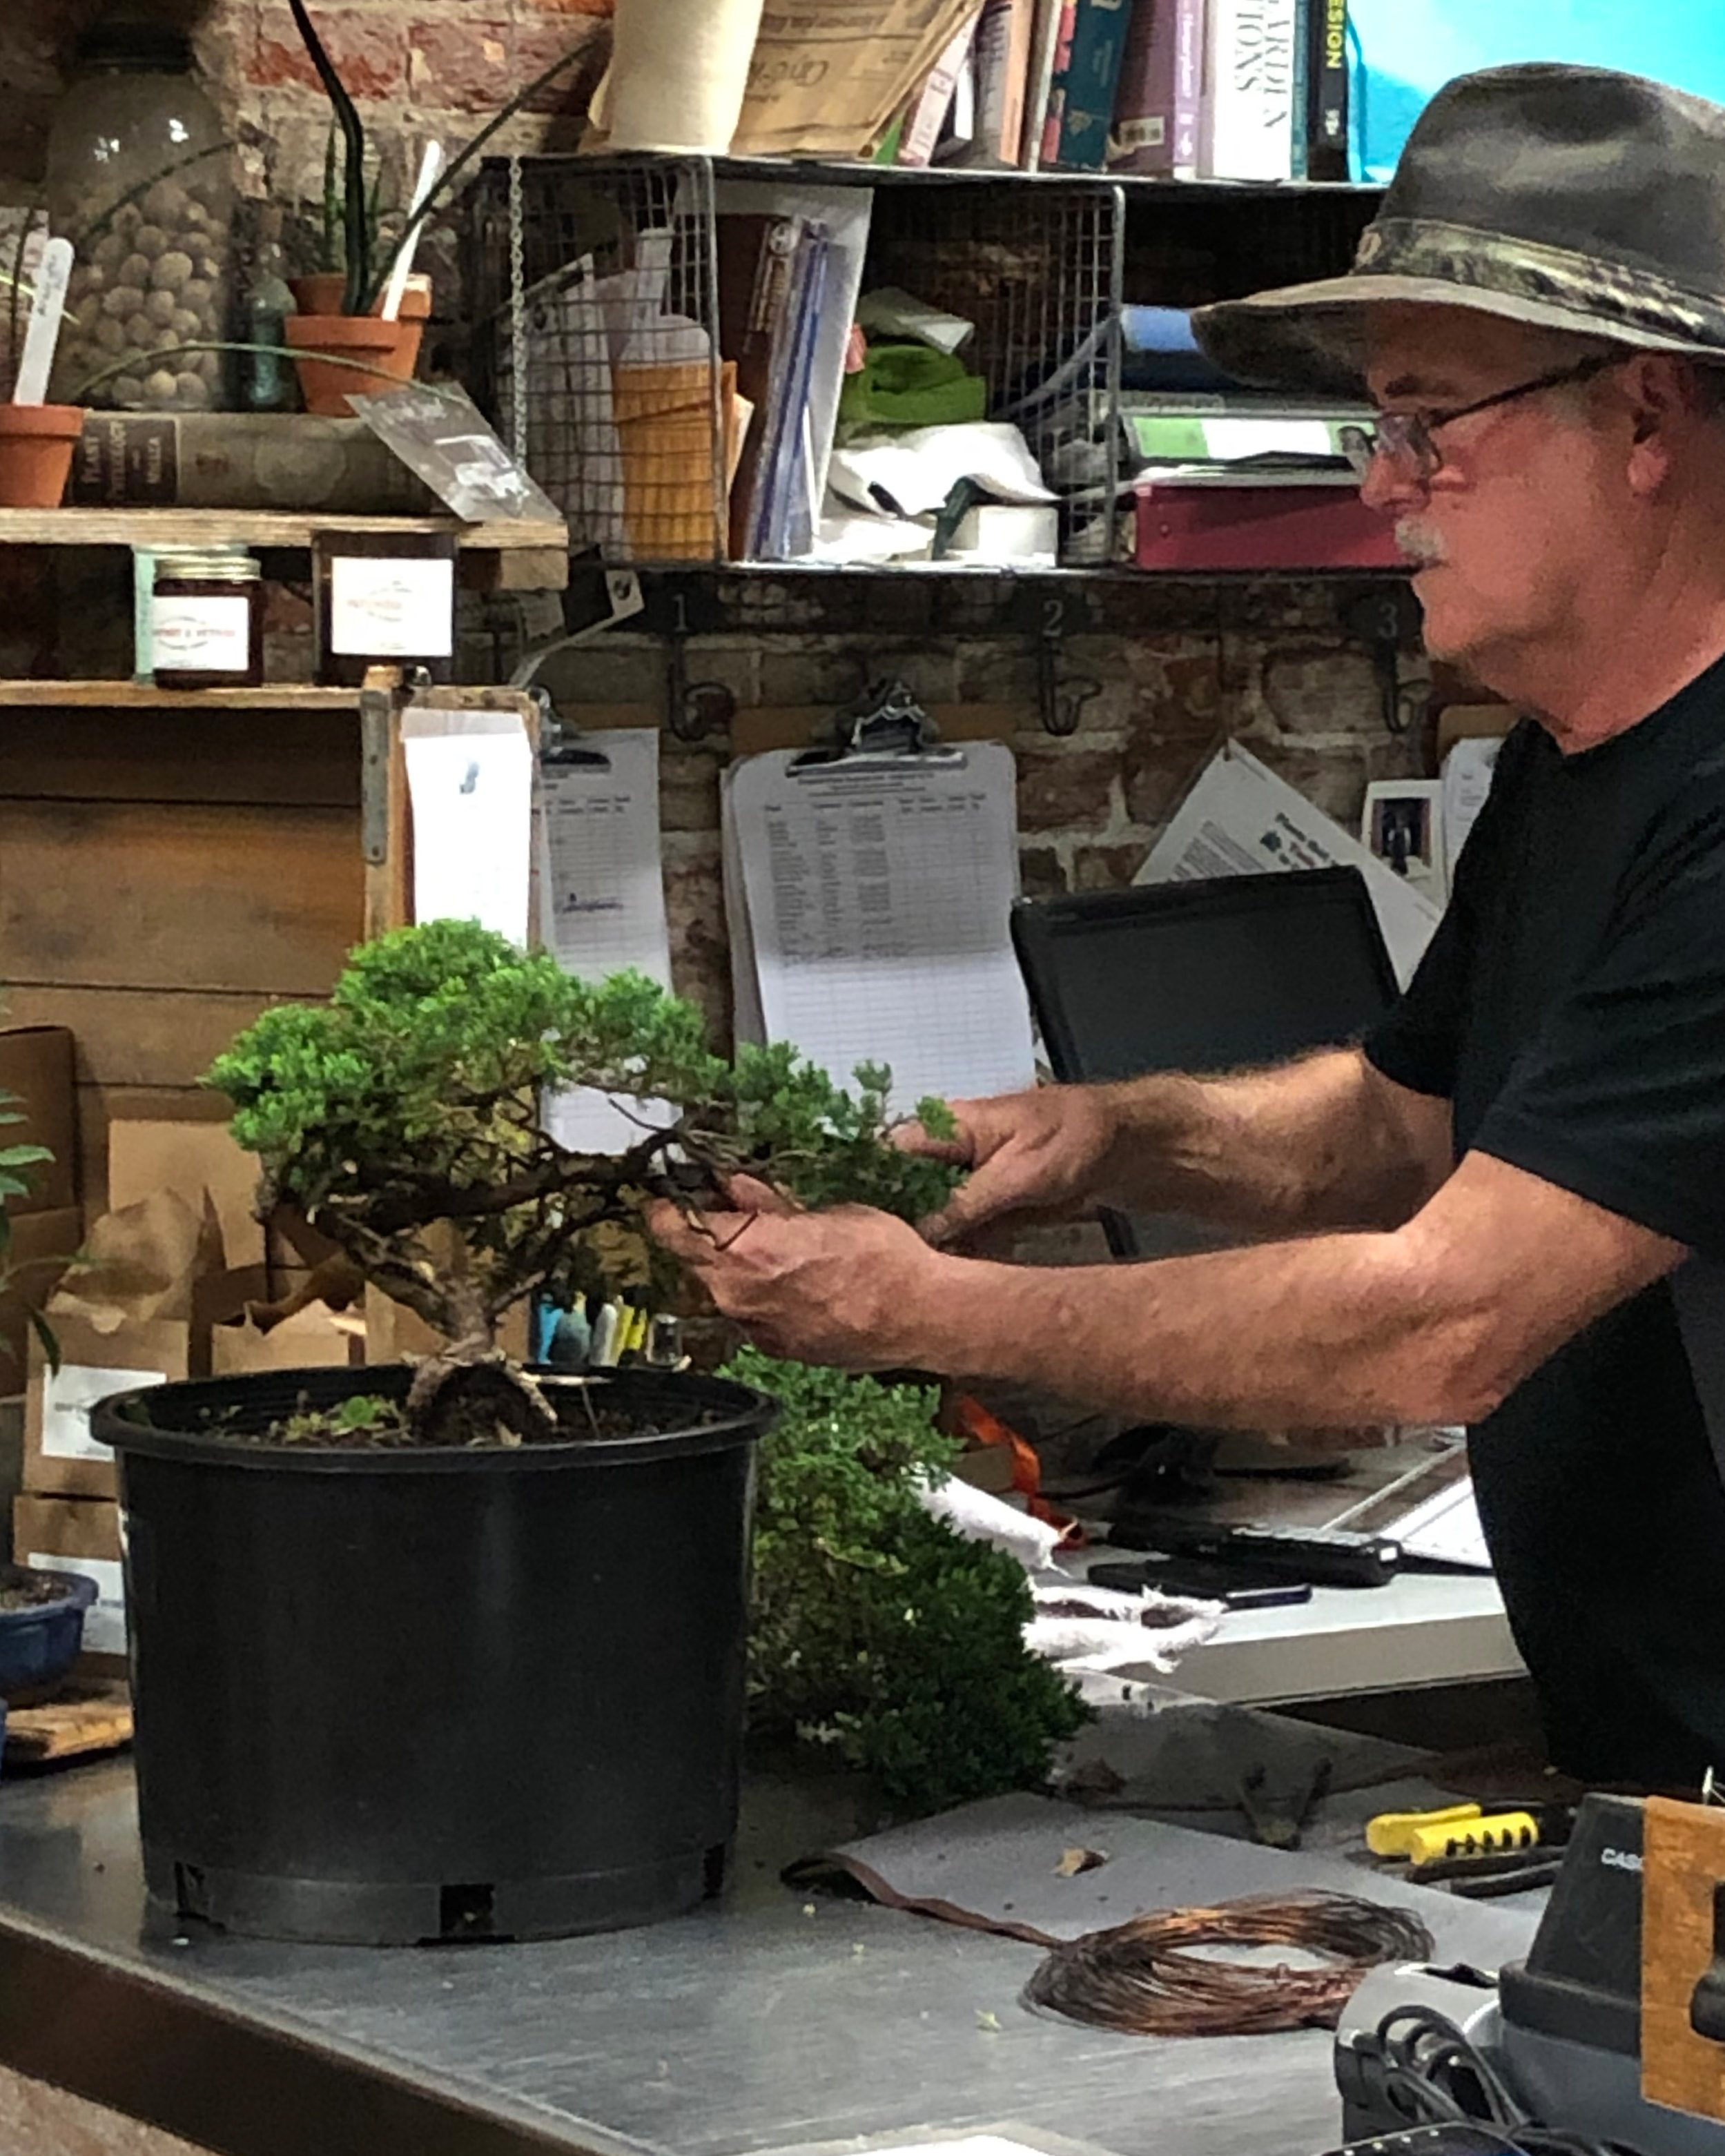 Mark Maher, member of the Pennsylvania Bonsai Society and owner of Lower Bucks Plantscaping demonstrates Bonsai techniques in our Beginning Bonsai Class this past April.